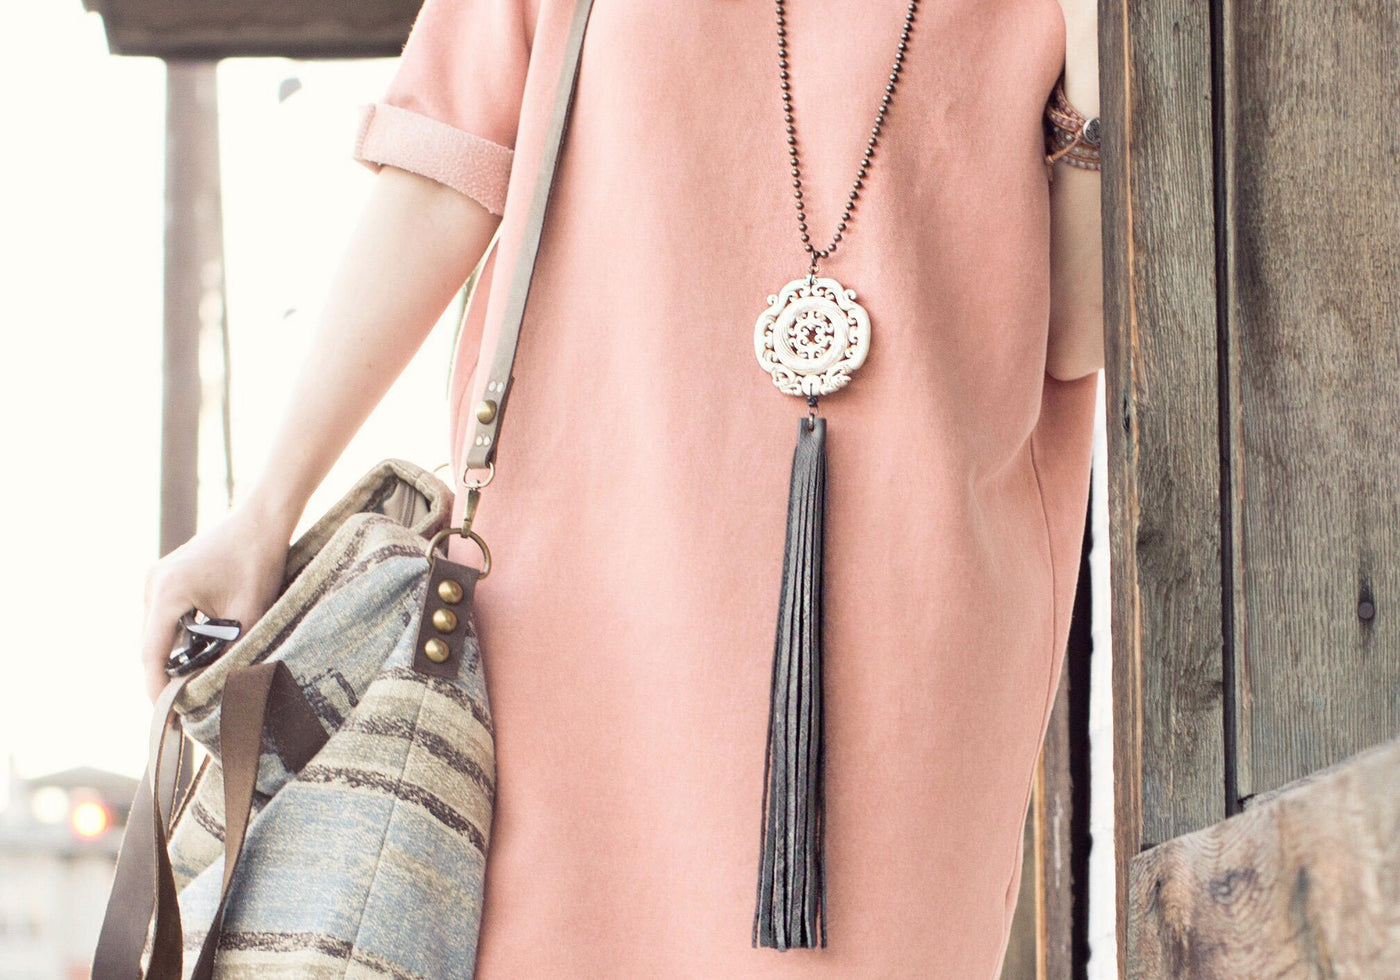 Jade Leather Bohemian Gypsy Ethnic Statement Necklace, Carved Stone Boho Big Gray Fringe Long White Pendant